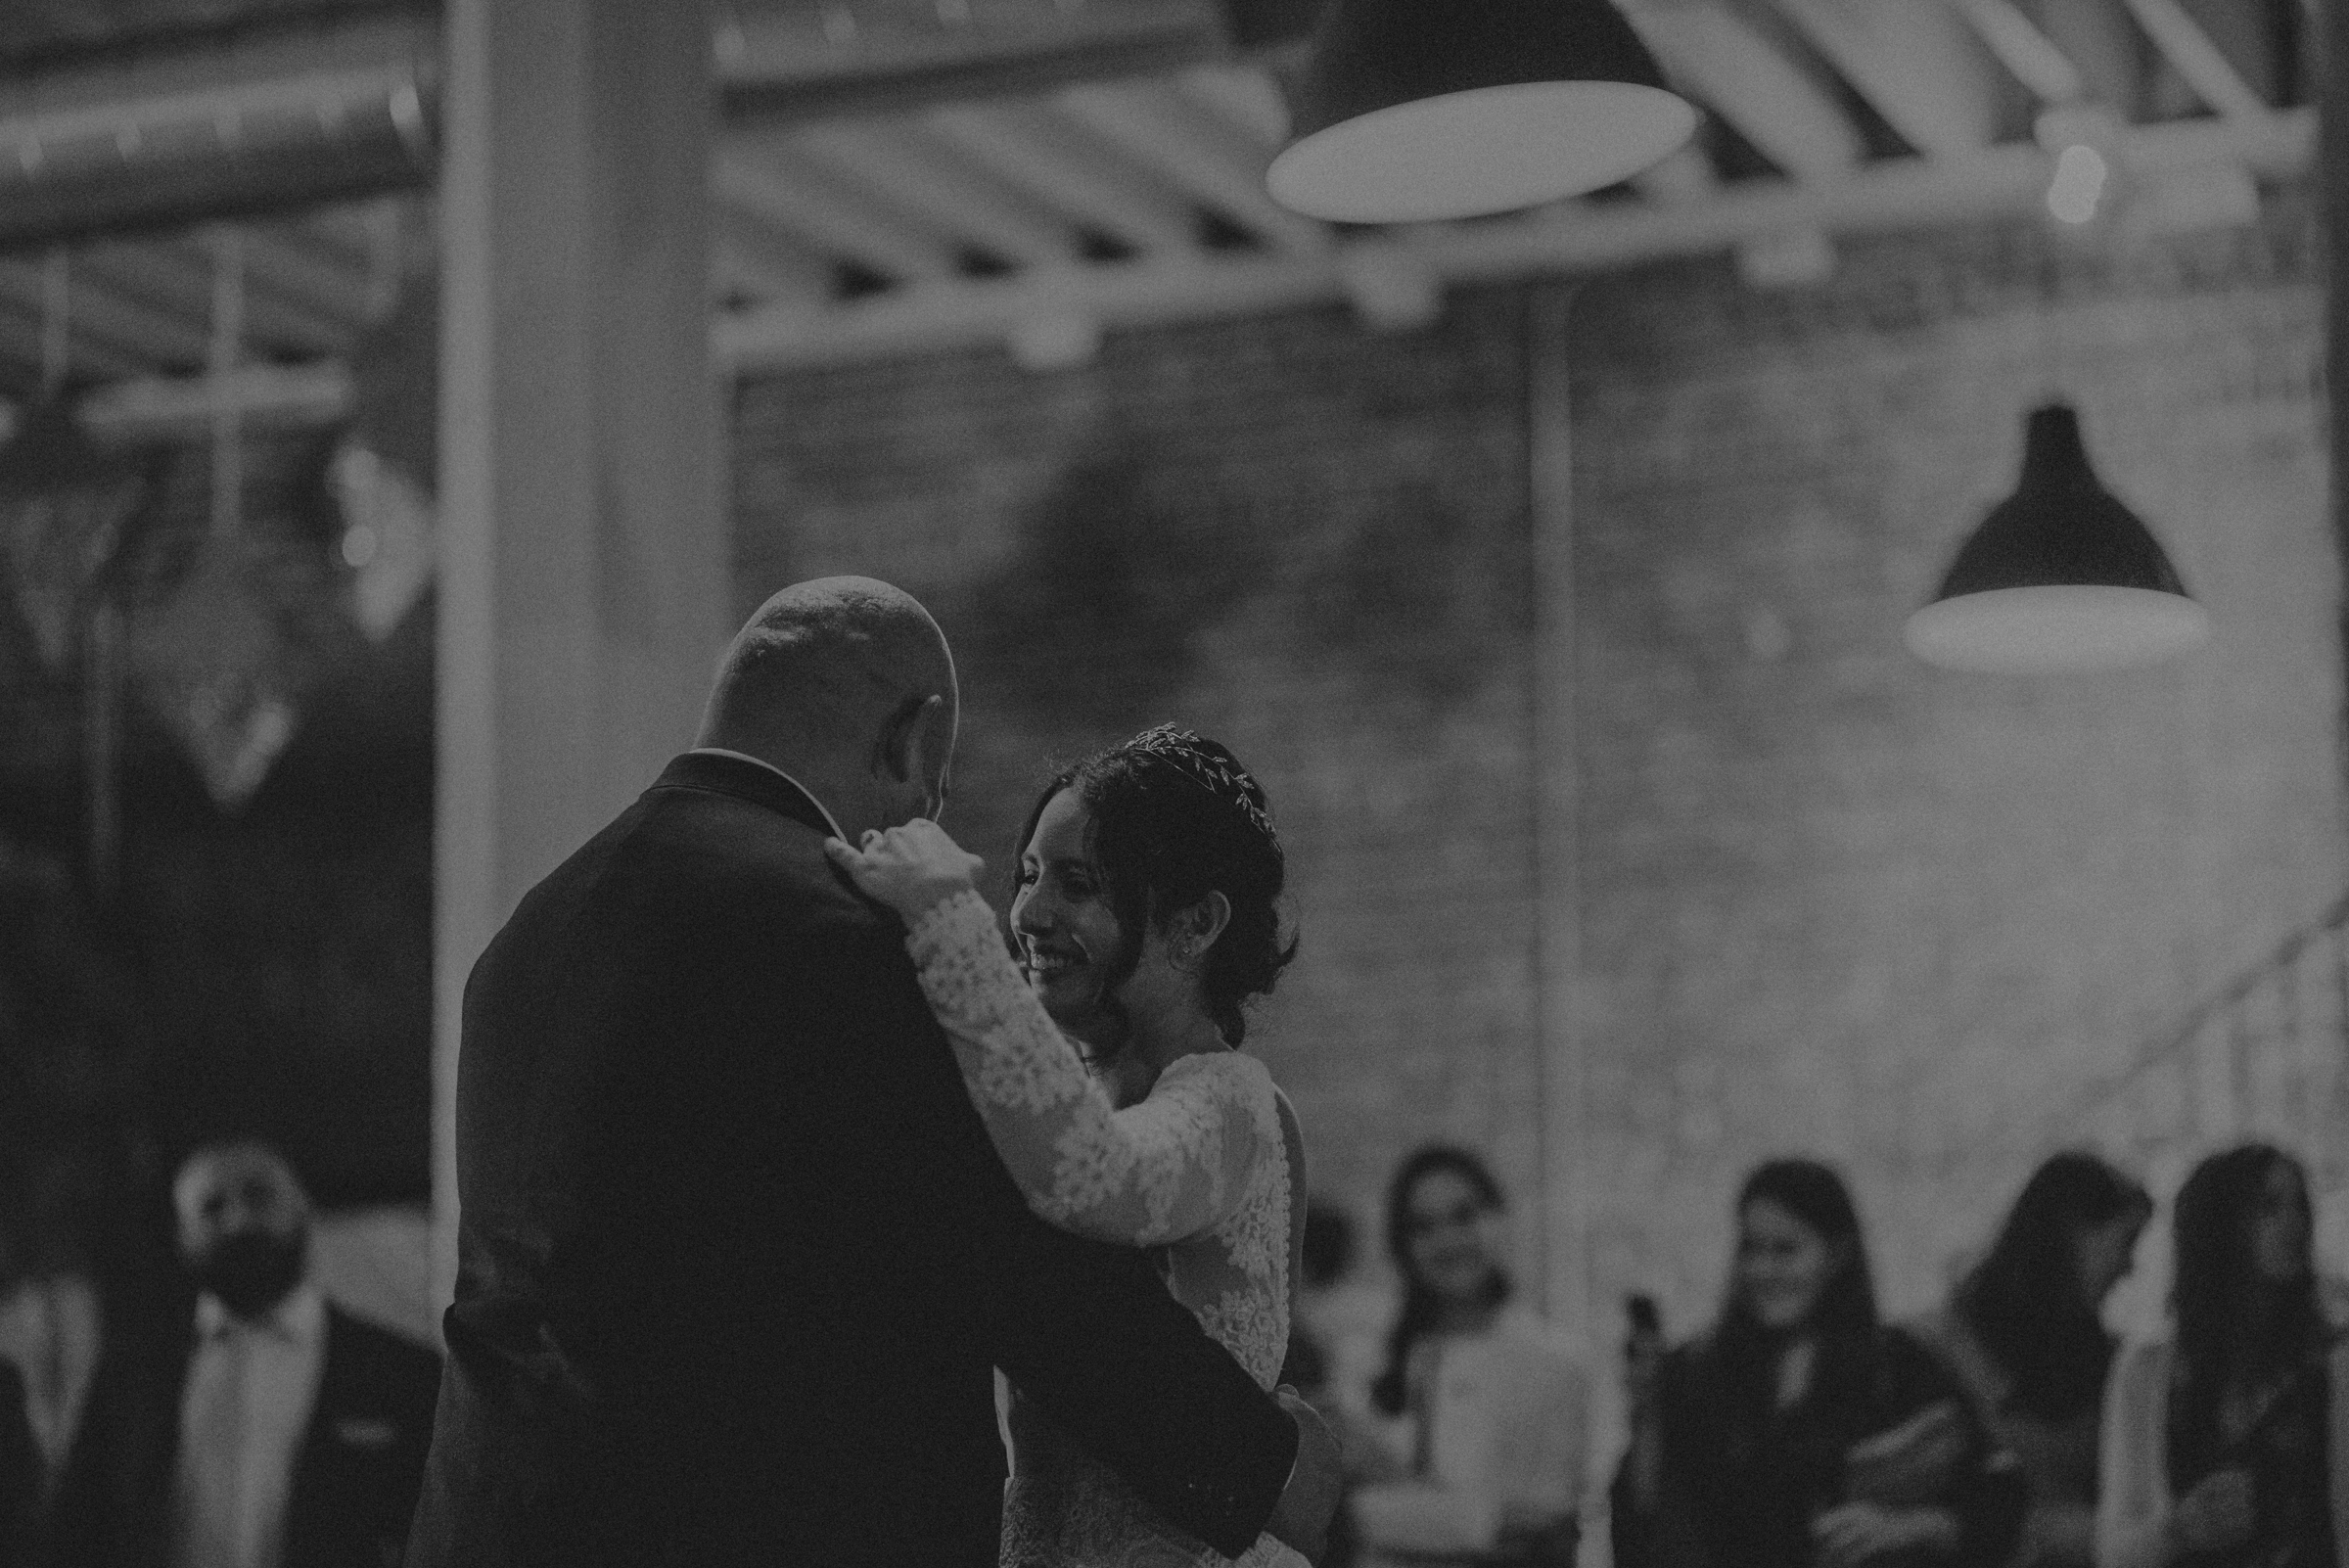 Isaiah + Taylor Photography - The Unique Space Wedding, Los Angeles Wedding Photography 150.jpg